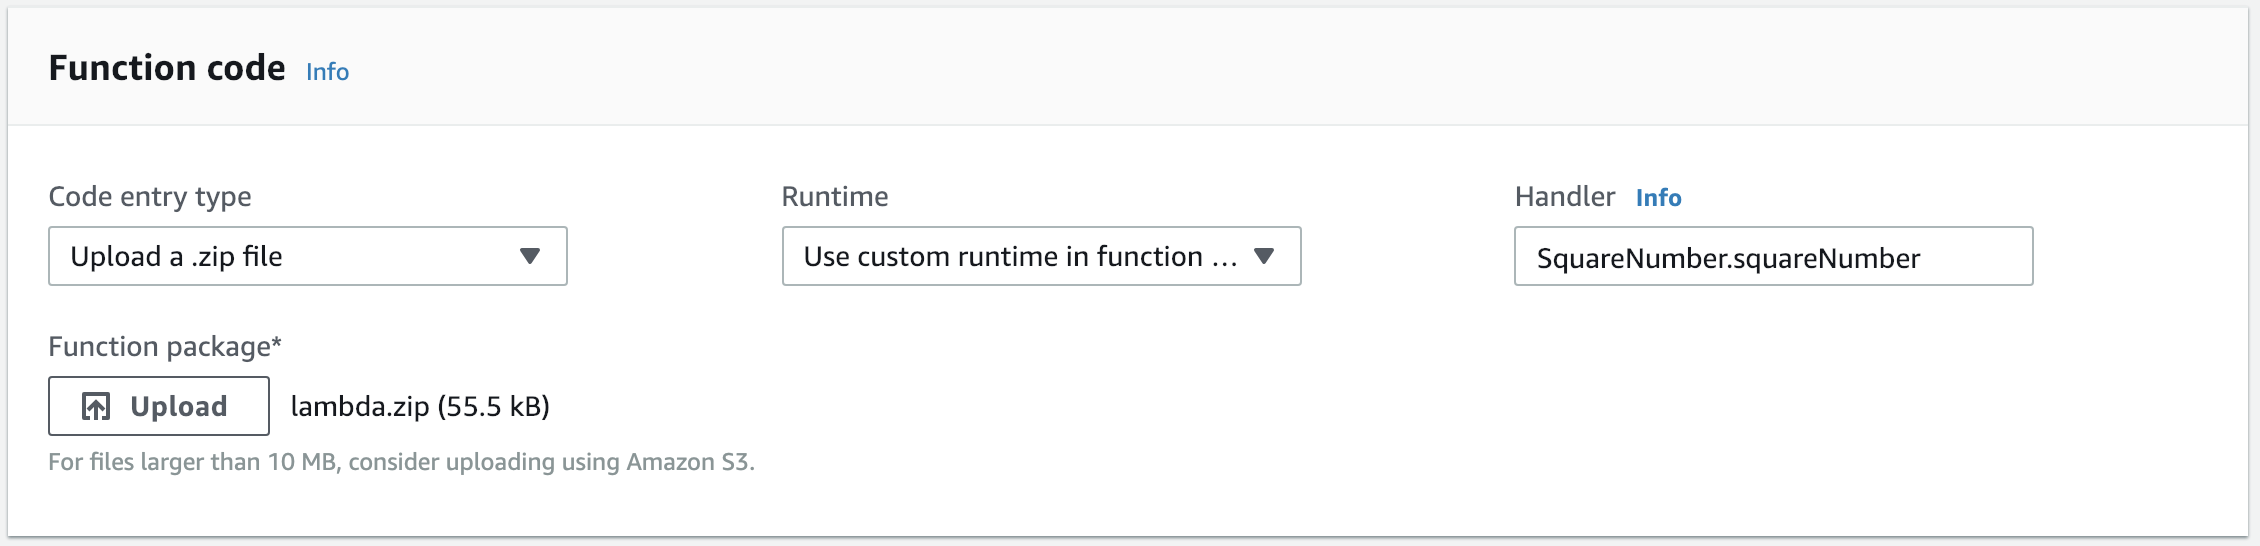 Upload the function package and set the handler